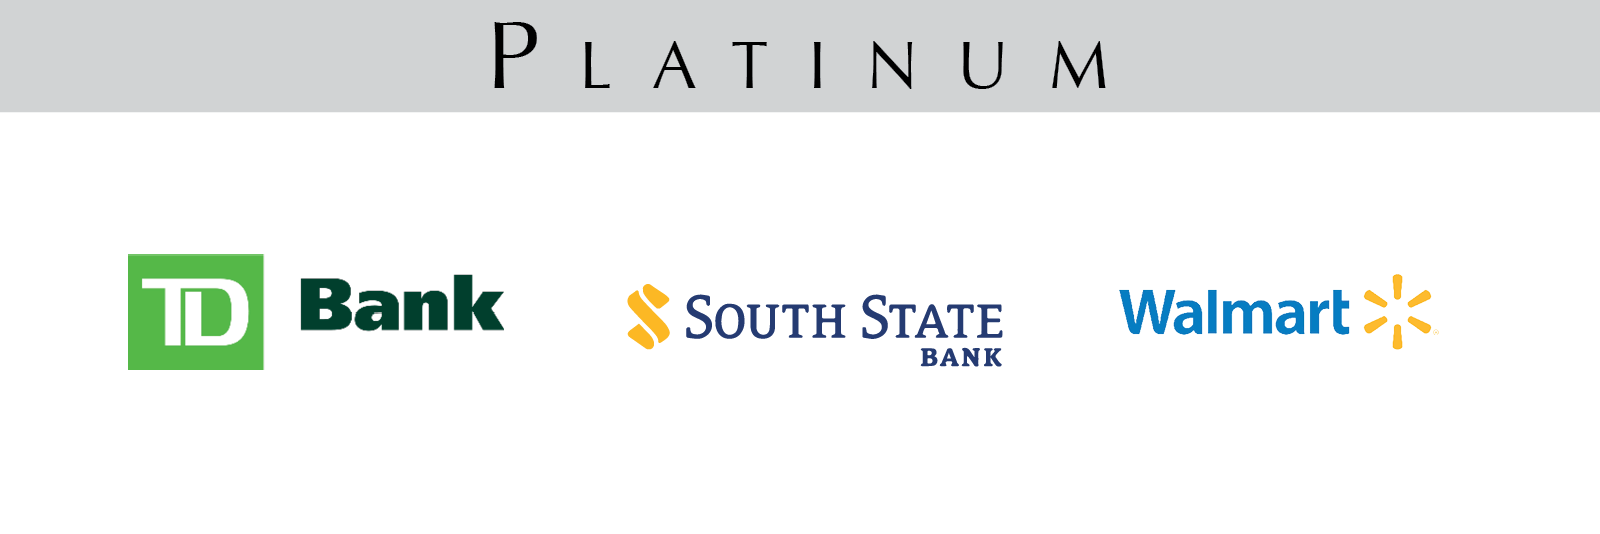 Website-Partnership-Slide-Platinum.png